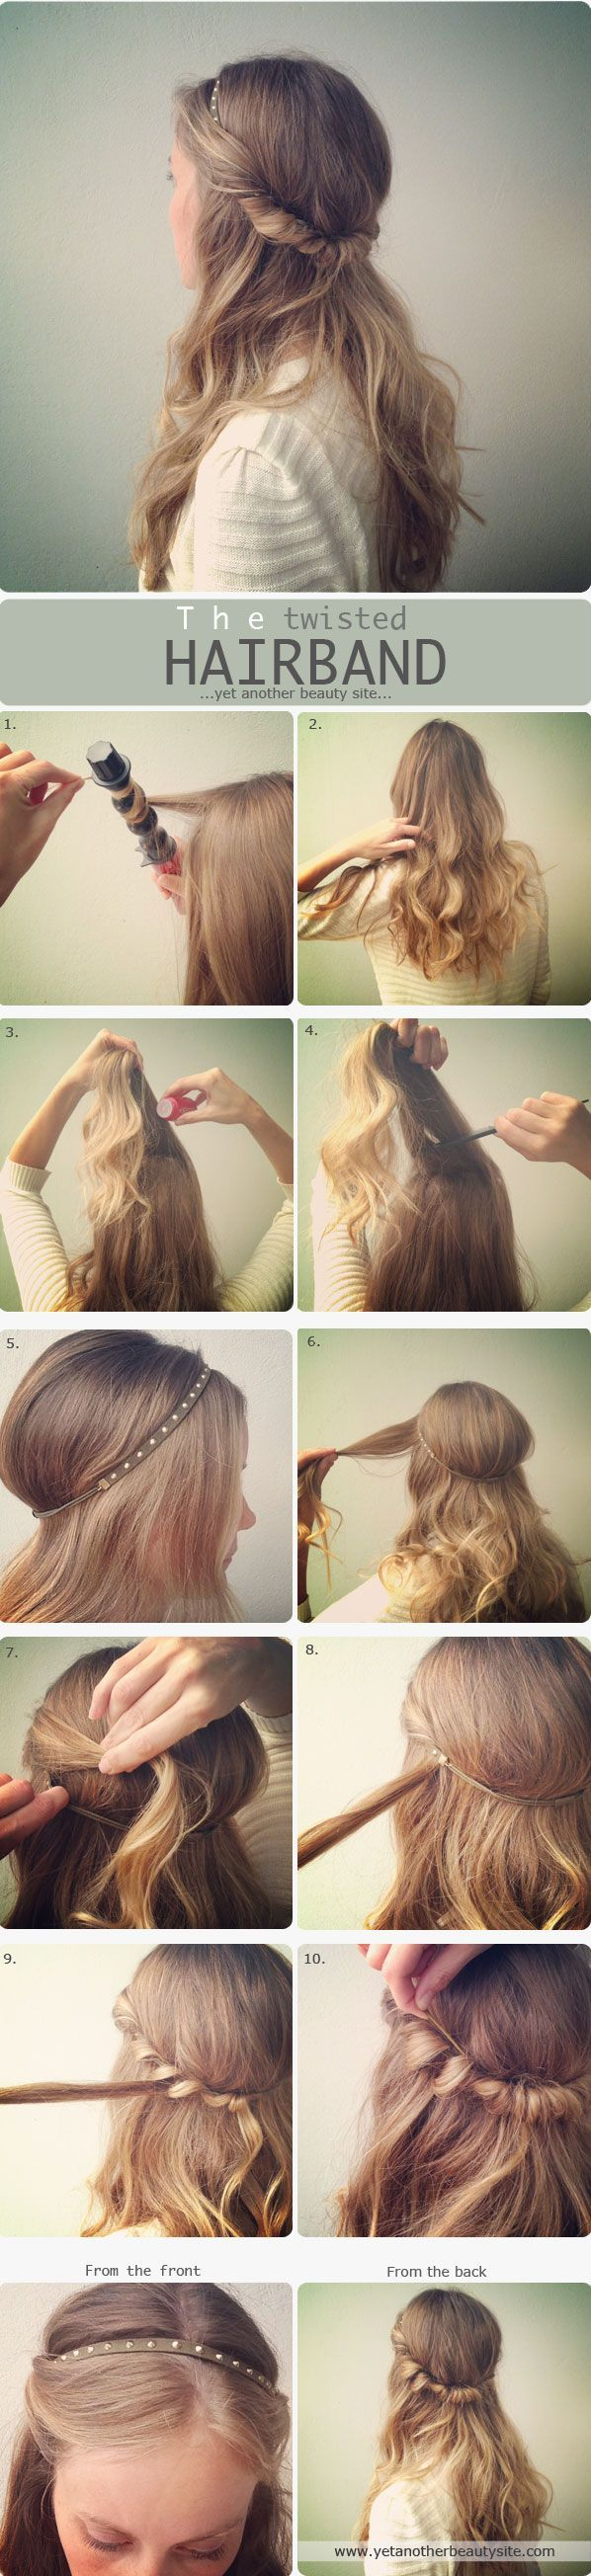 Yet another beauty site...but soooooo amazing! My favorite is how to tie a scarf into a bow :)